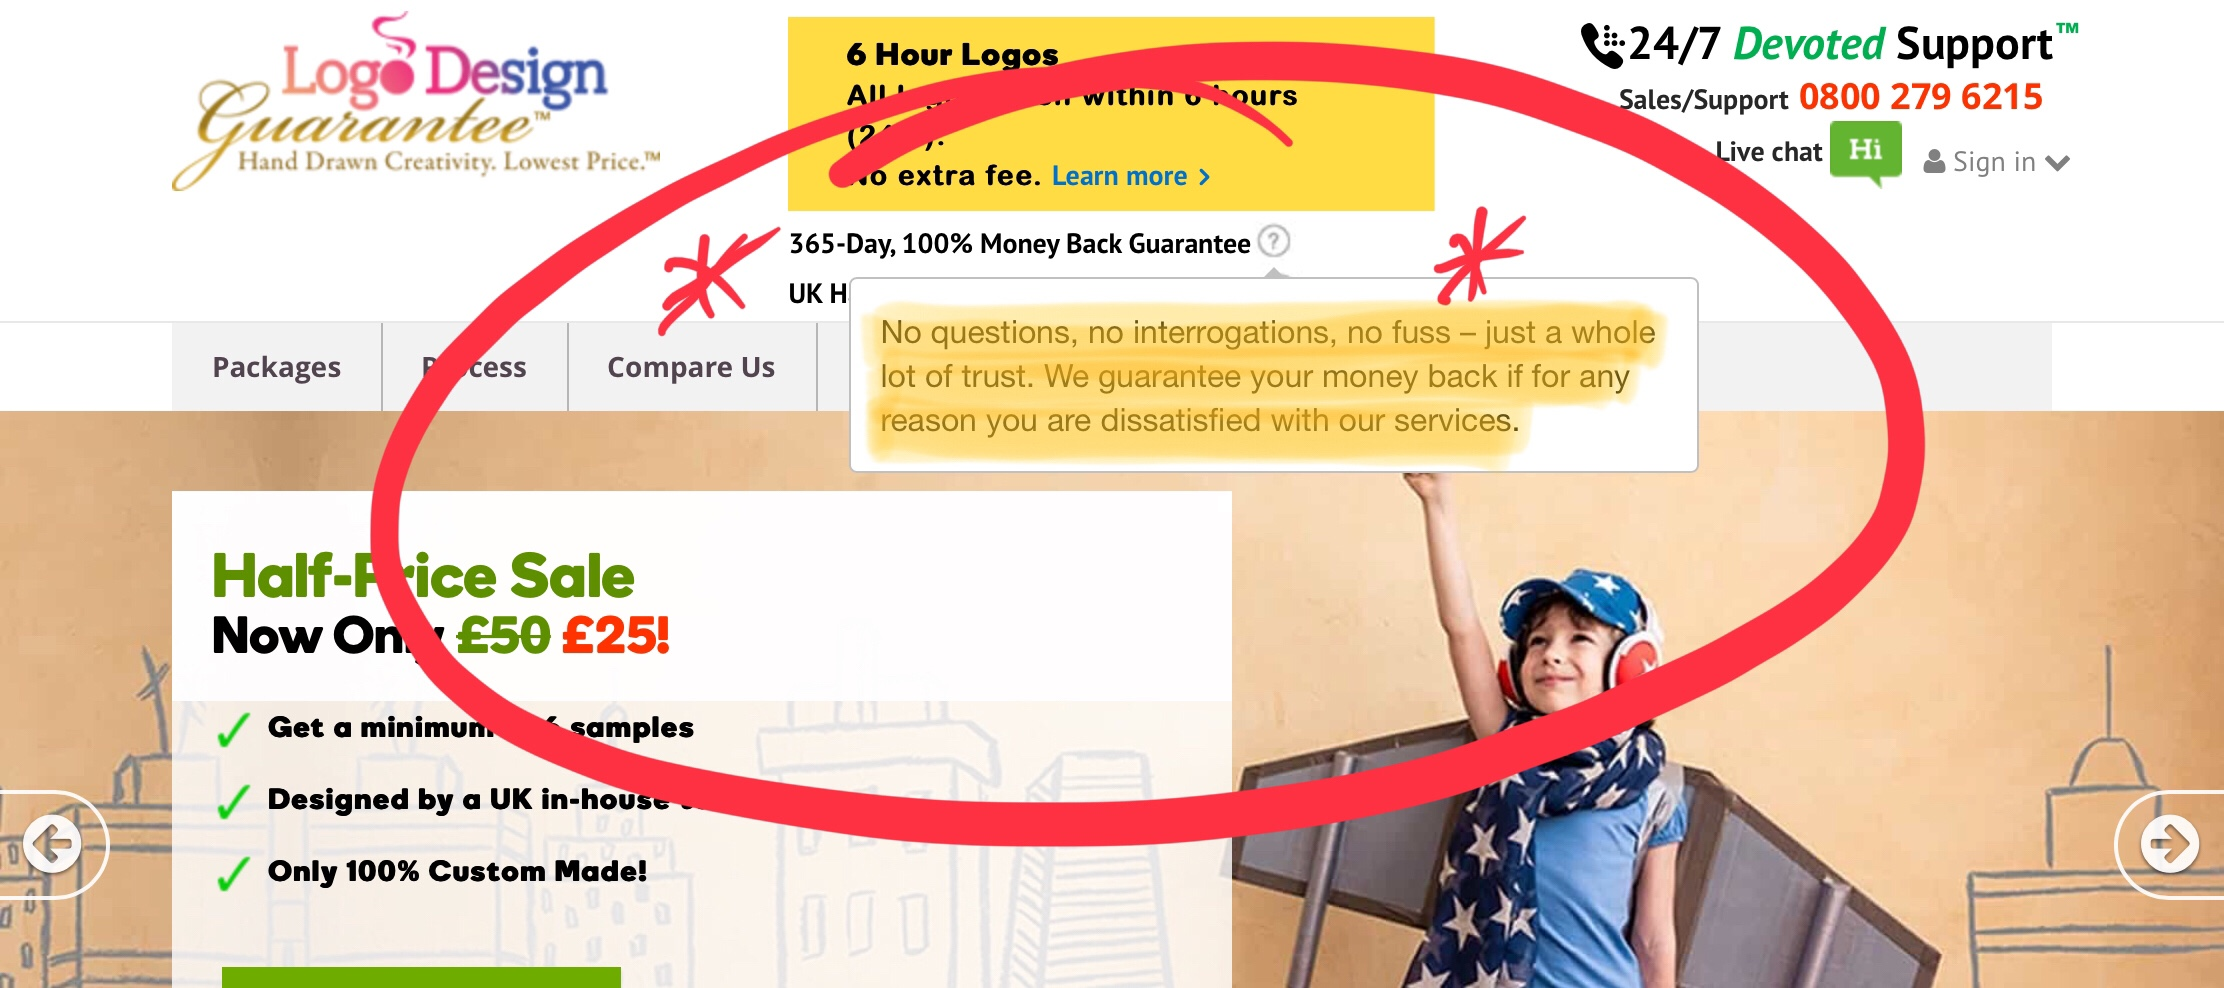 LogoDesignGuarantee Promise a no fuss refund policy - they do not deliver!